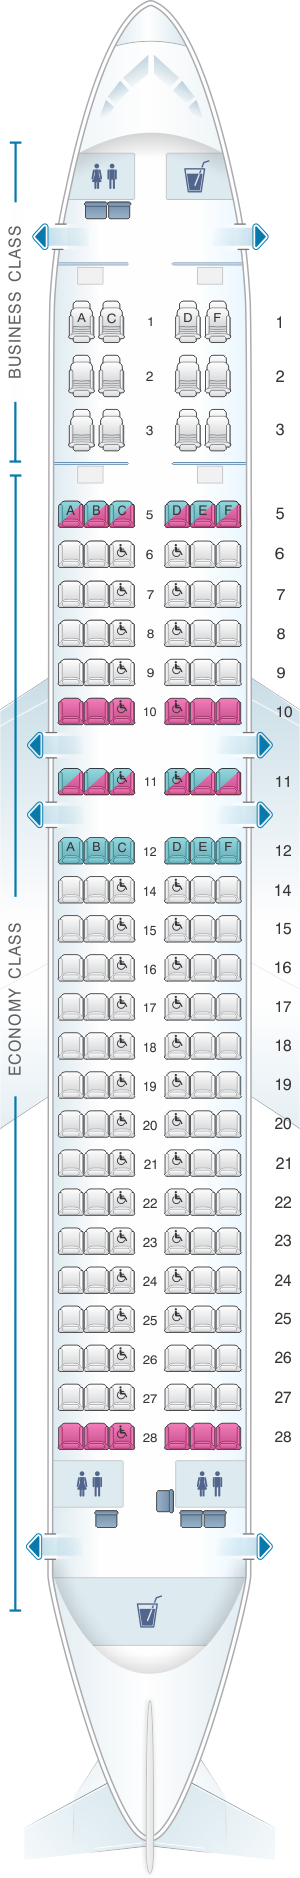 Seat map for SriLankan Airlines Airbus A320 Config. 3